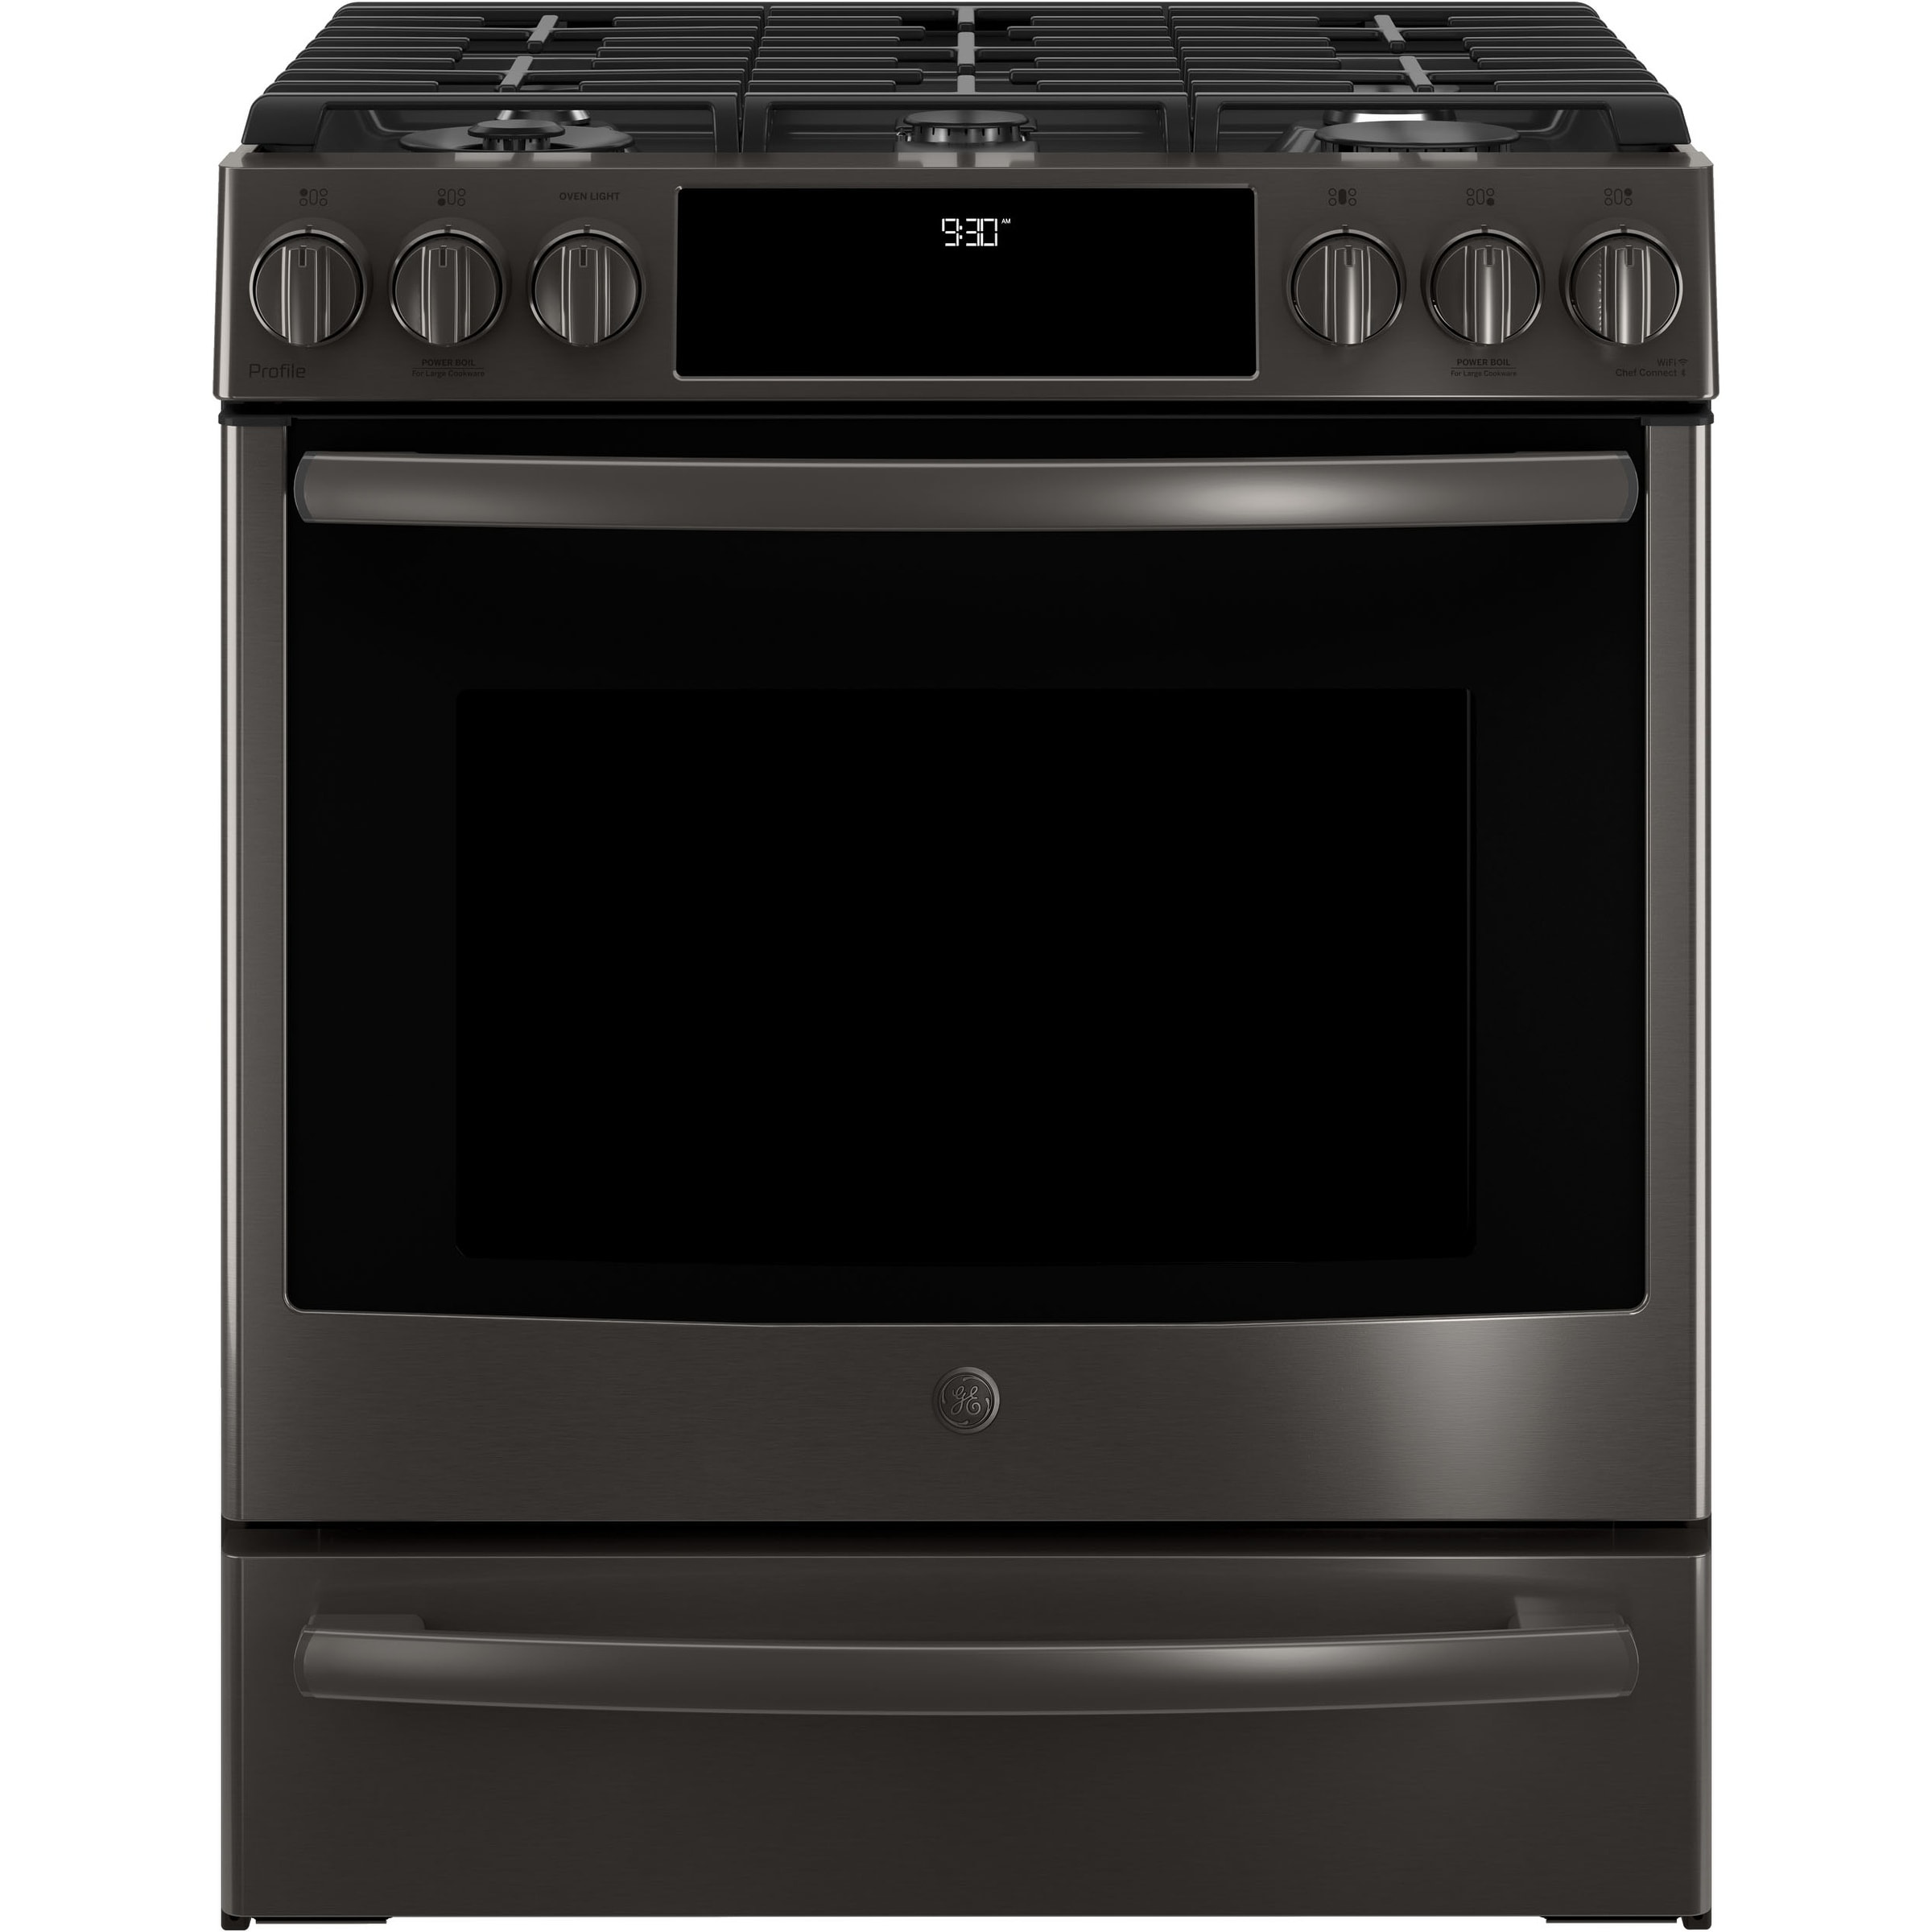 "GE Profile Series 30"" Slide-In Front Control Gas Range (A..."